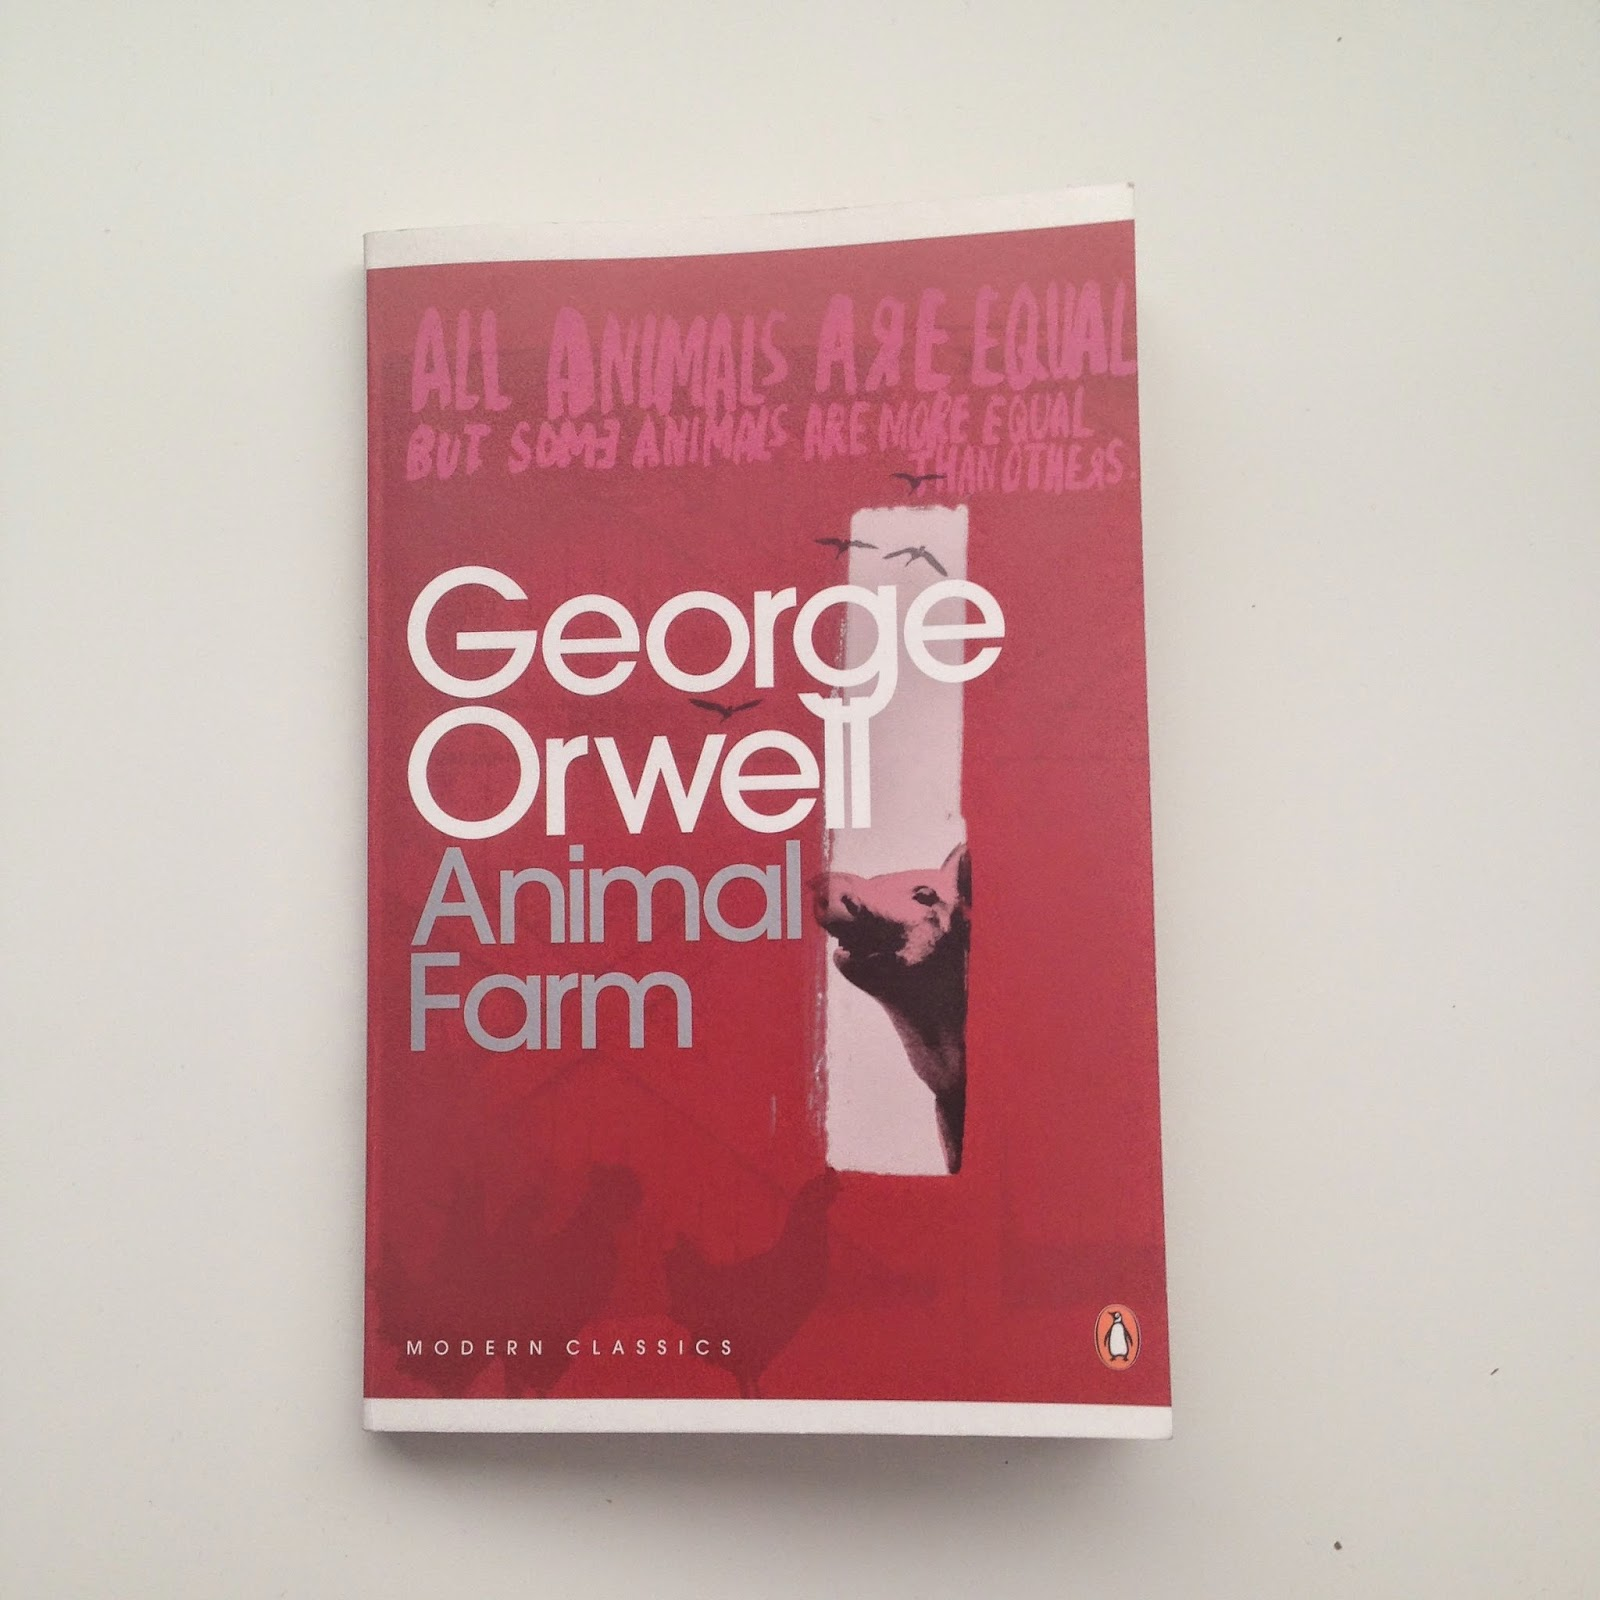 an essay on george orwells animal farm This essay george orwell - shooting an elephant and other 63,000+ term papers animal farm - george orwell shooting an elephant: george orwell.